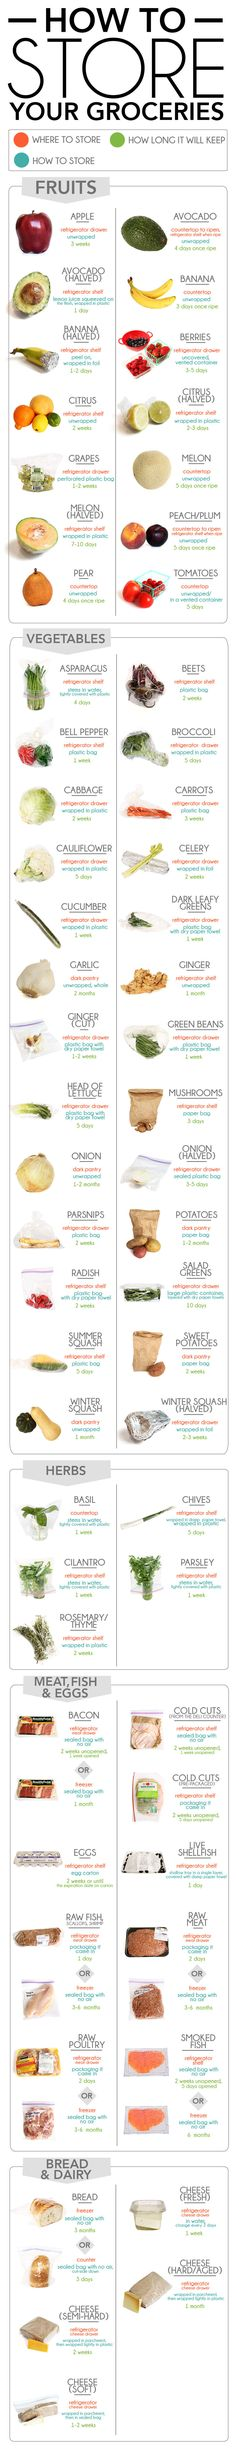 How To Store Your Groceries #clean #recipe #healthy #eatclean #recipes